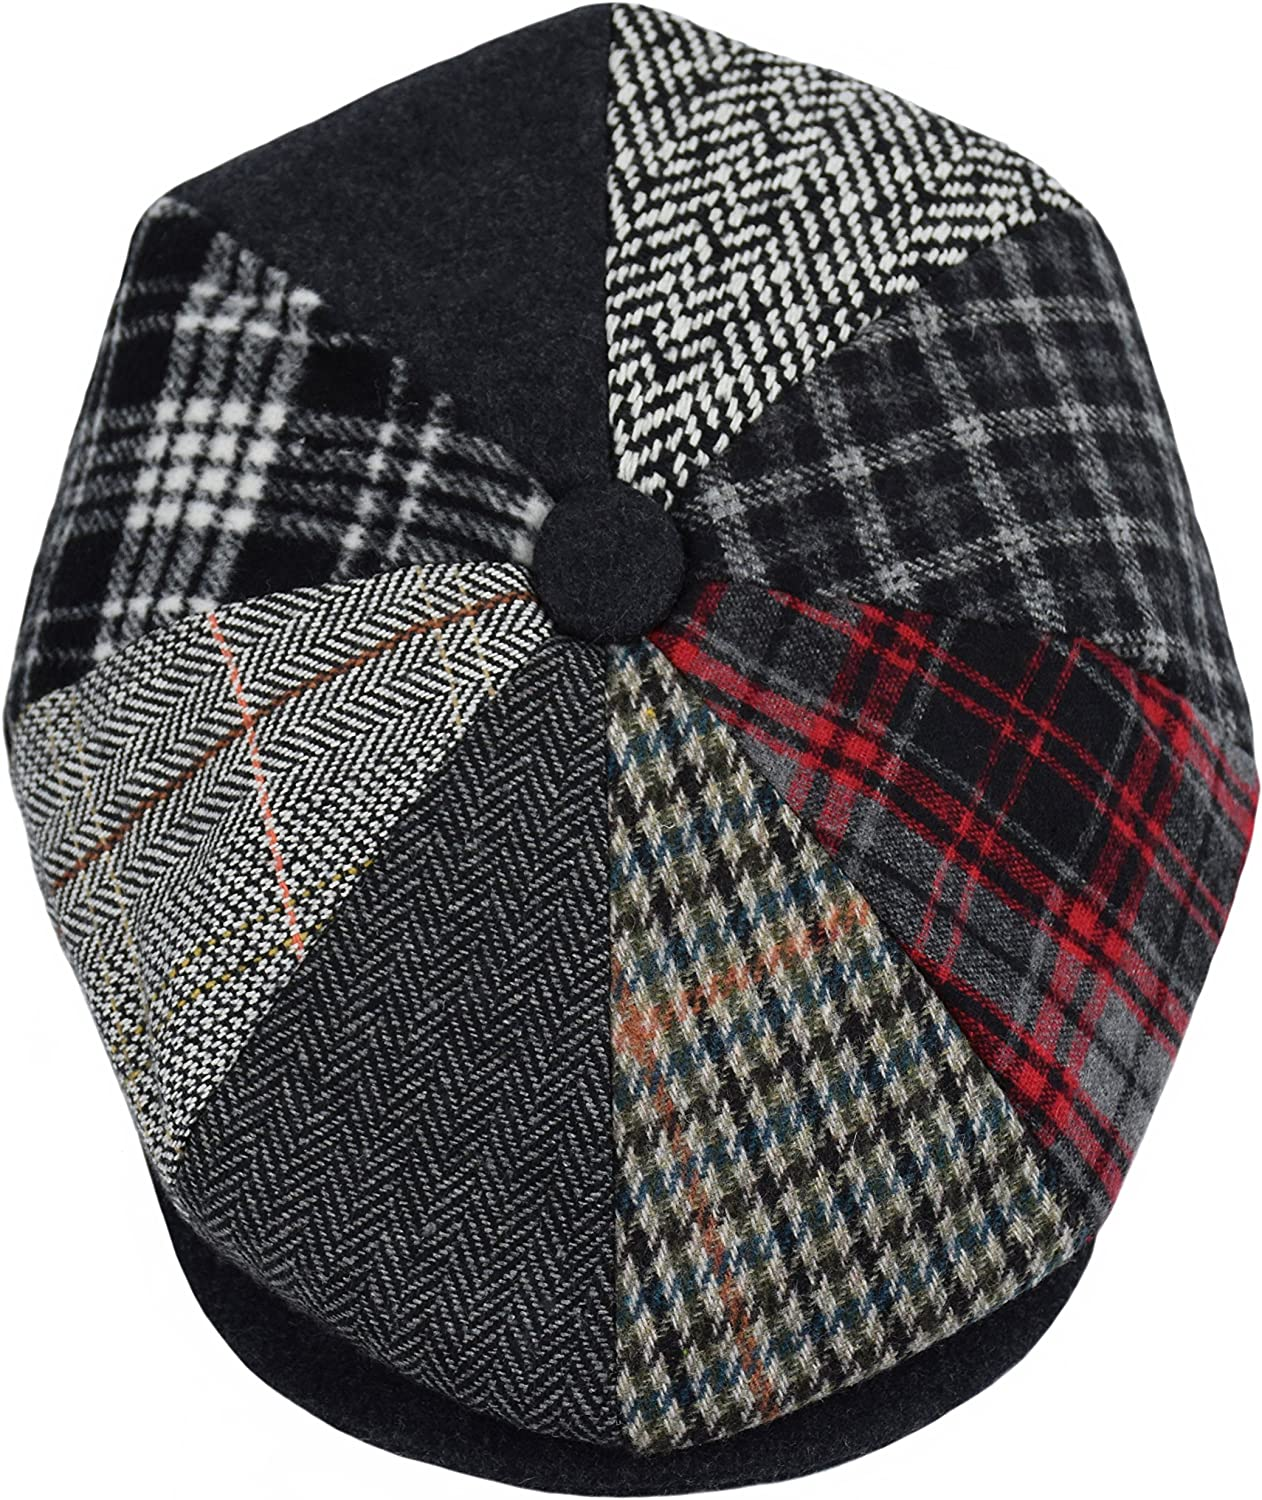 urbanhatshop Men's Wool Herringbone Newsboy Cap Driving Cabbie Tweed Applejack Golf Hat